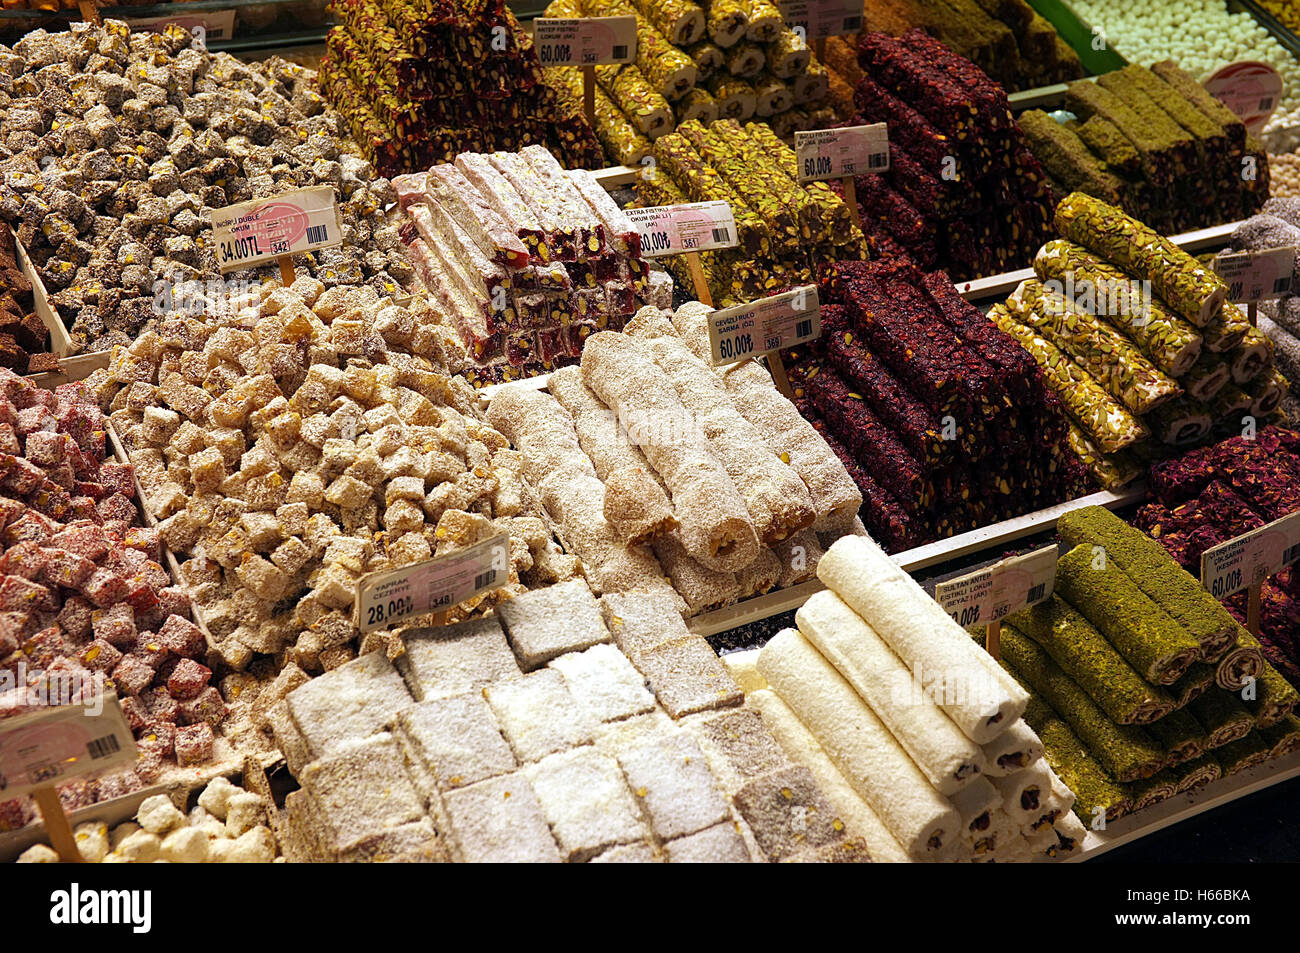 Turkish Delight / Lokum / Candy - Stock Image